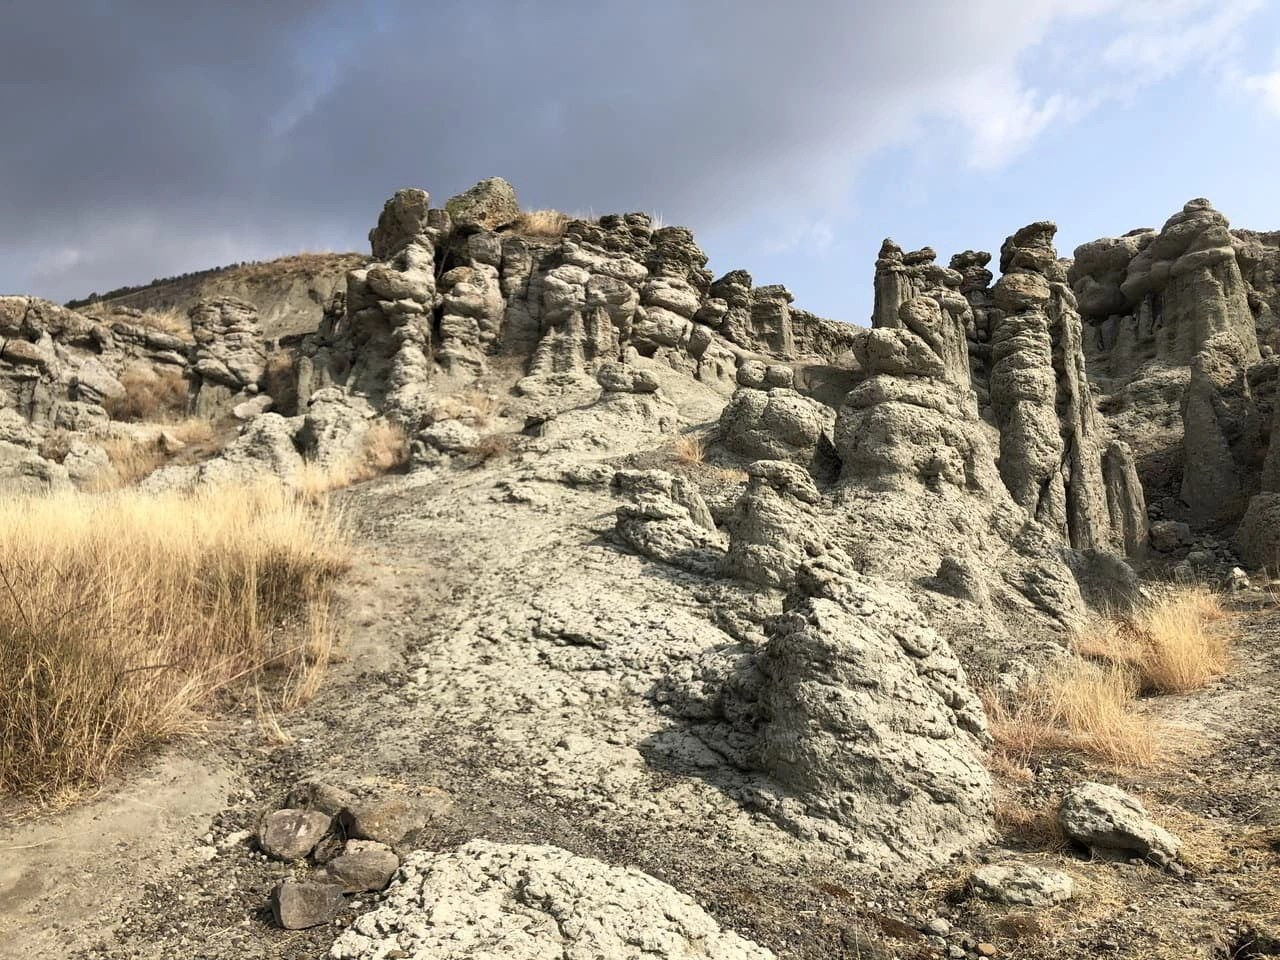 Earth pillars shaped in a resemblance of human figures in Kuklica Macedonia.